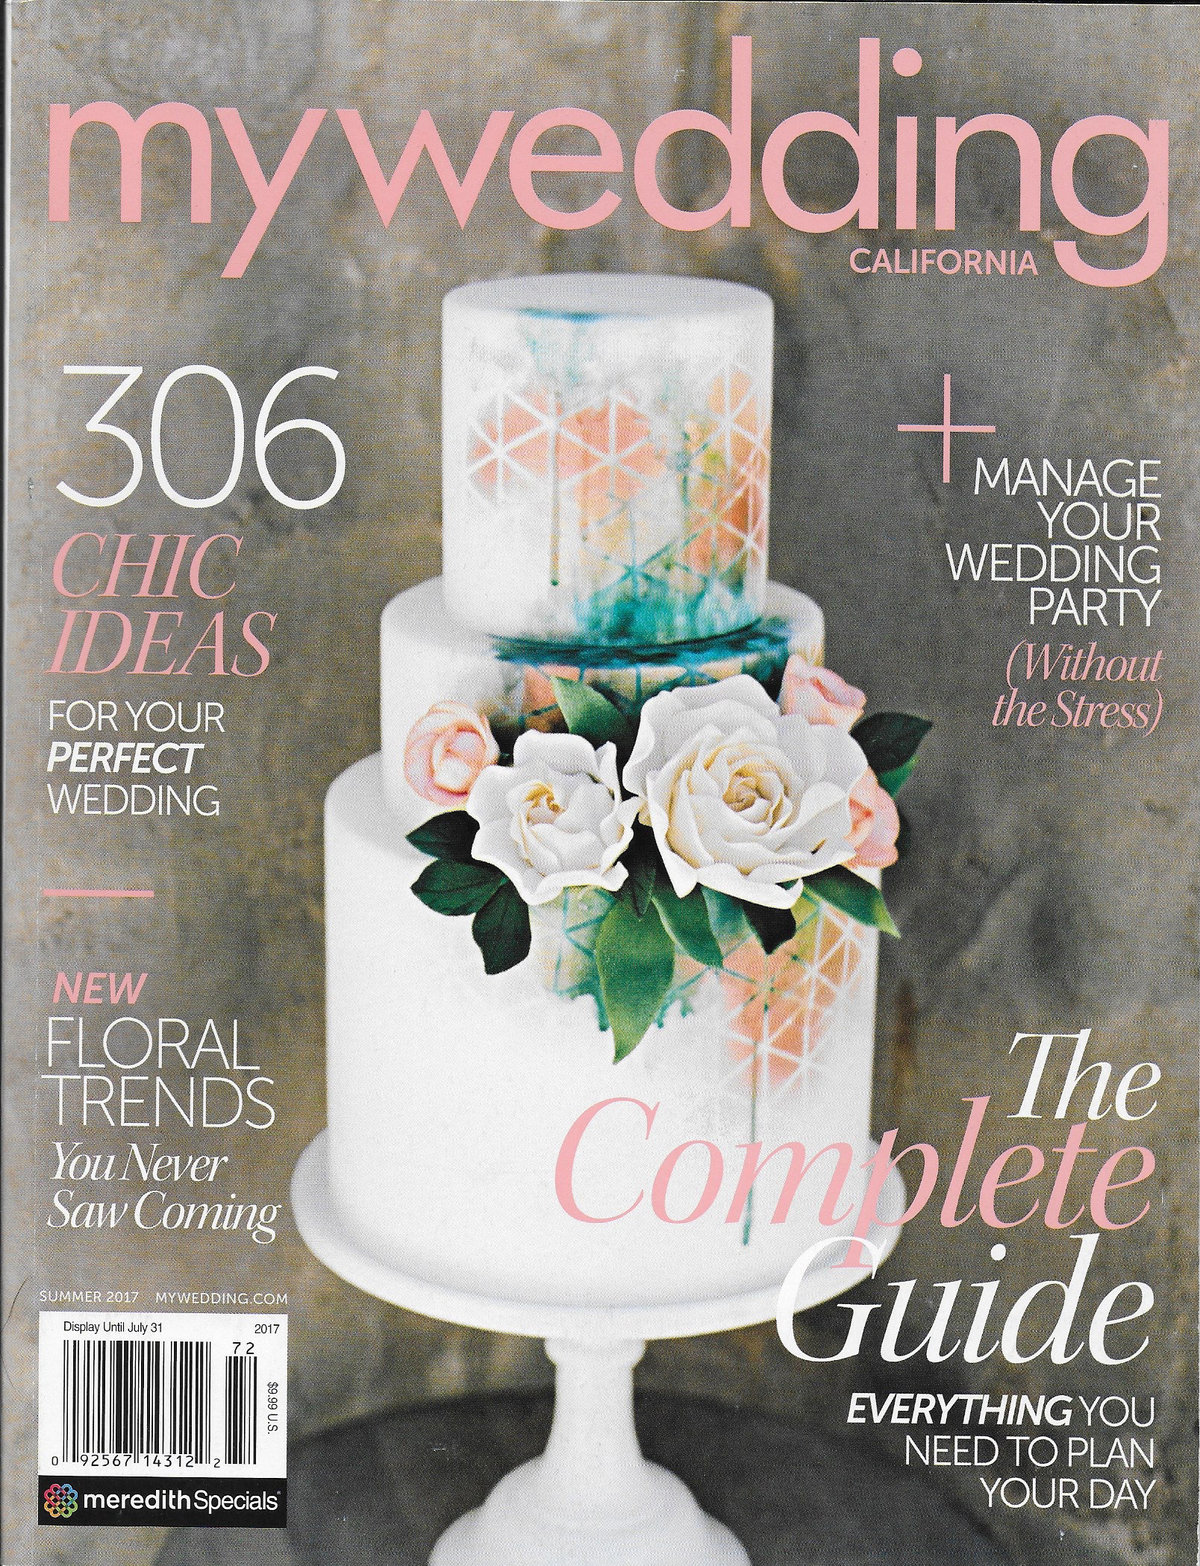 myweddingmag